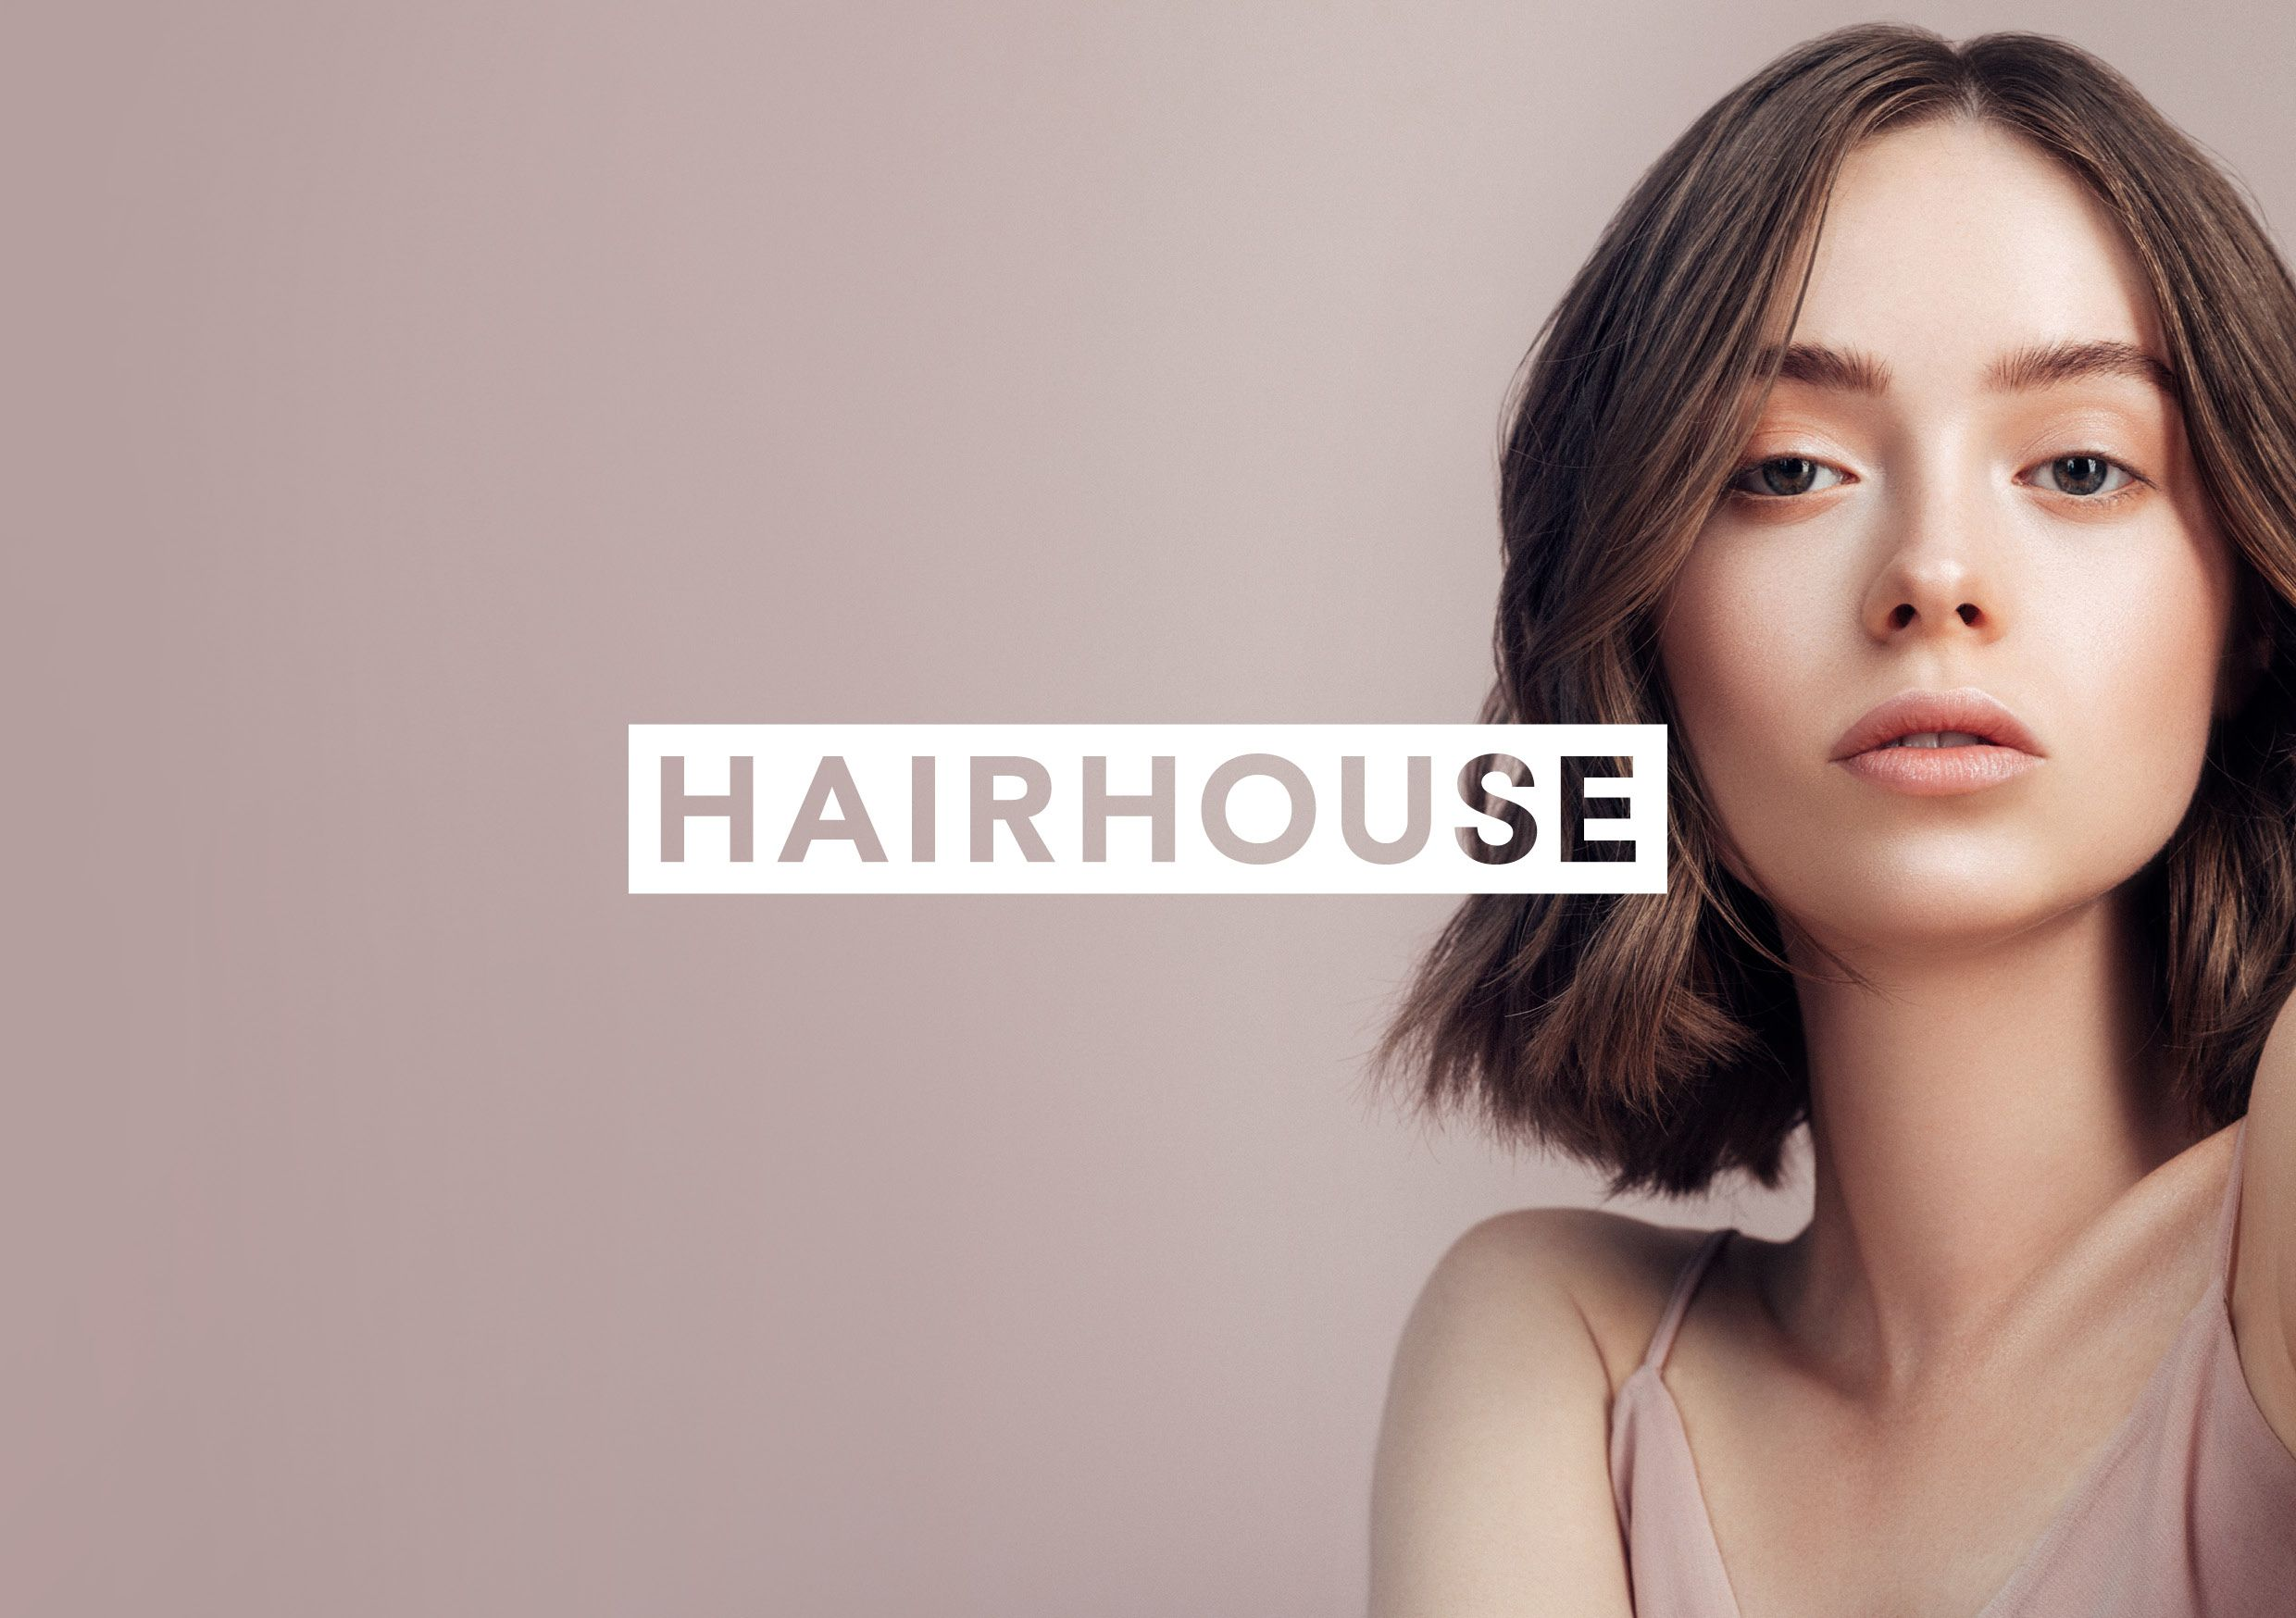 Hairhouse Warehouse reveals Hairhouse rebrand | Inside Franchise Business